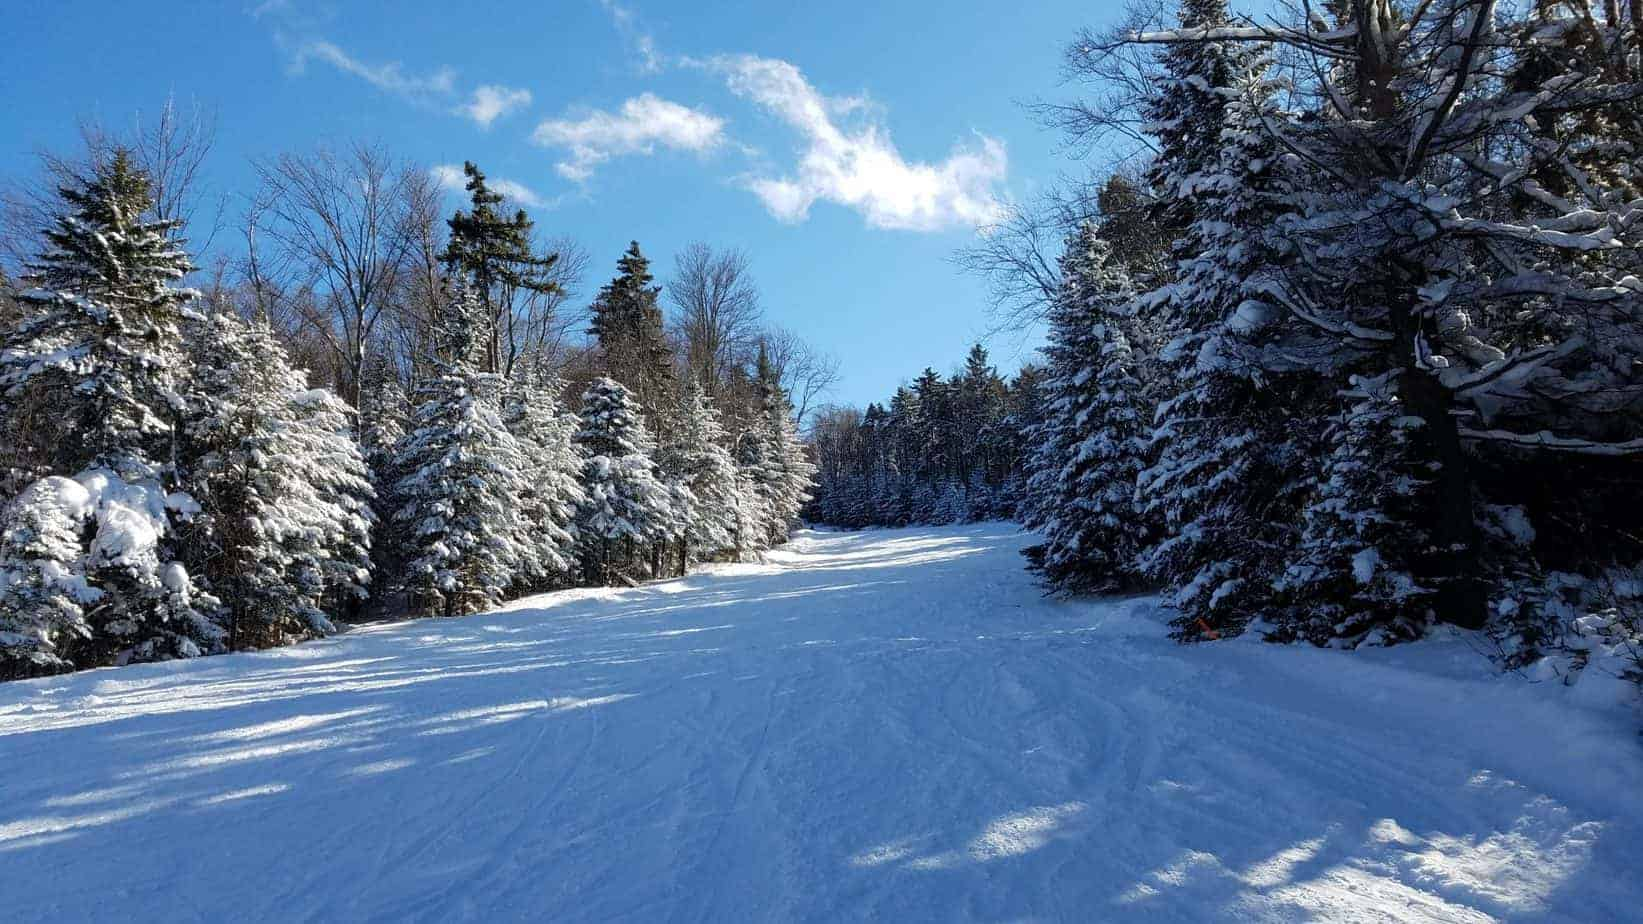 skiing in New Hampshire - New England Christmas activities